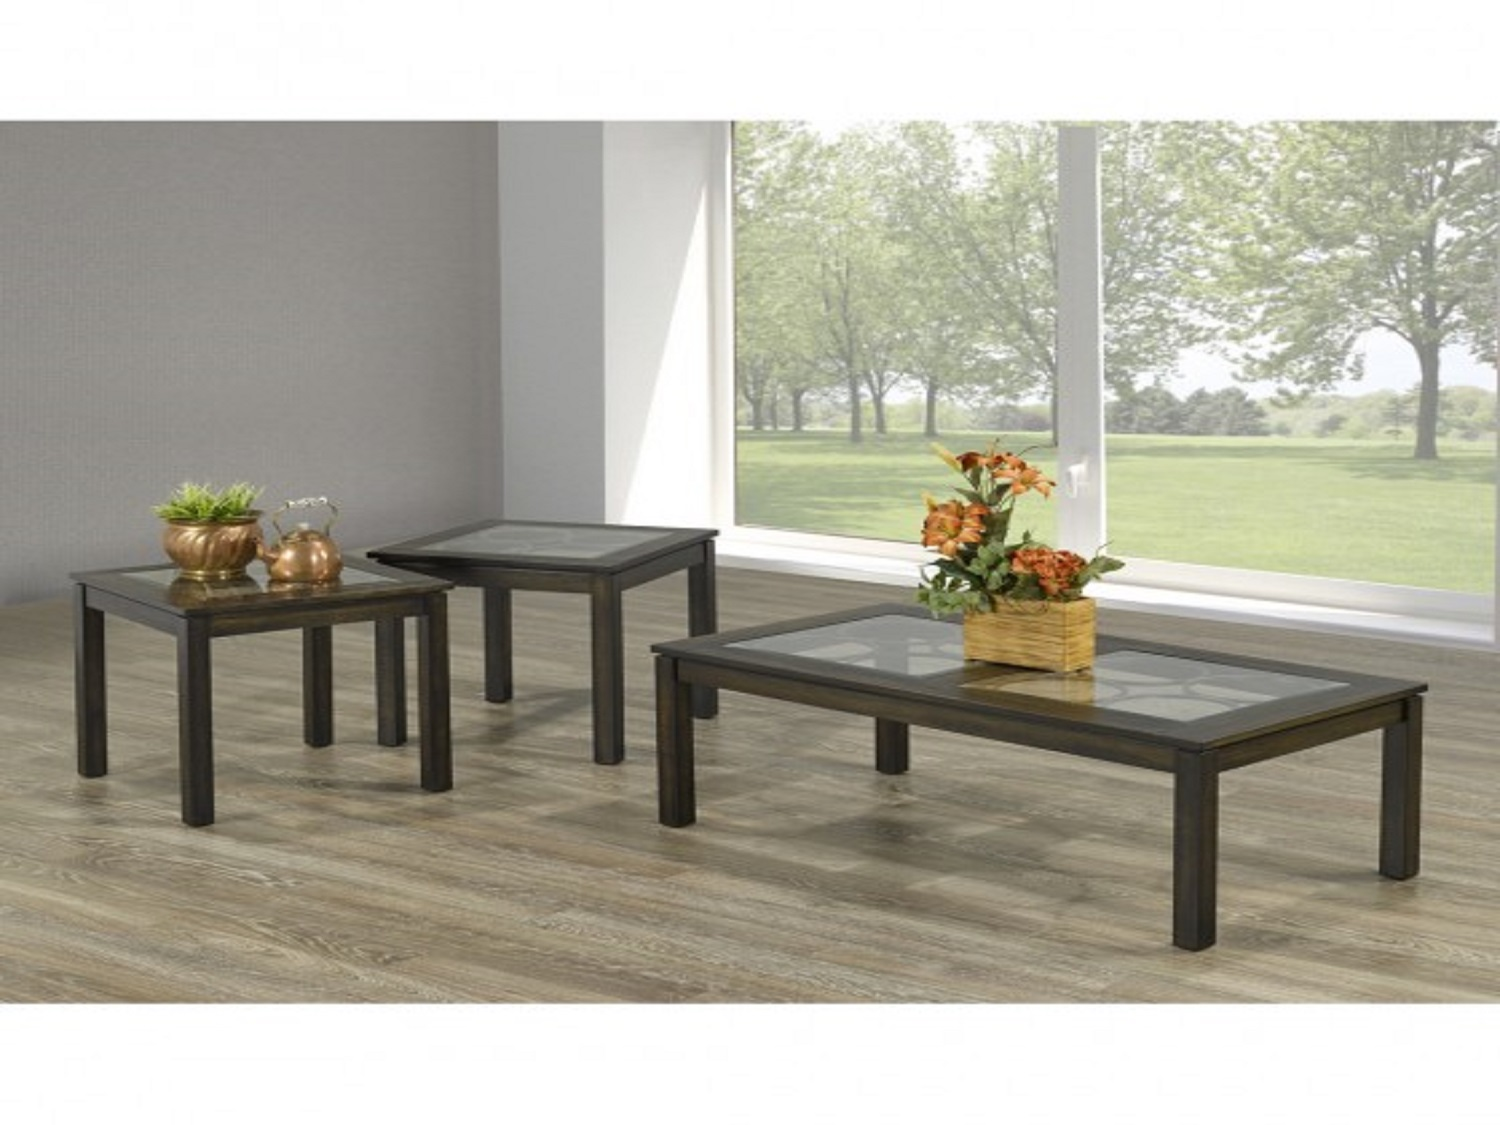 4245-13 TUSCAN 3PC COFFEE SET, 4245-13, Coffee Table by Midha Furniture to Brampton, Mississauga, Etobicoke, Toronto, Scraborough, Caledon, Oakville, Markham, Ajax, Pickering, Oshawa, Richmondhill, Kitchener, Hamilton and GTA area